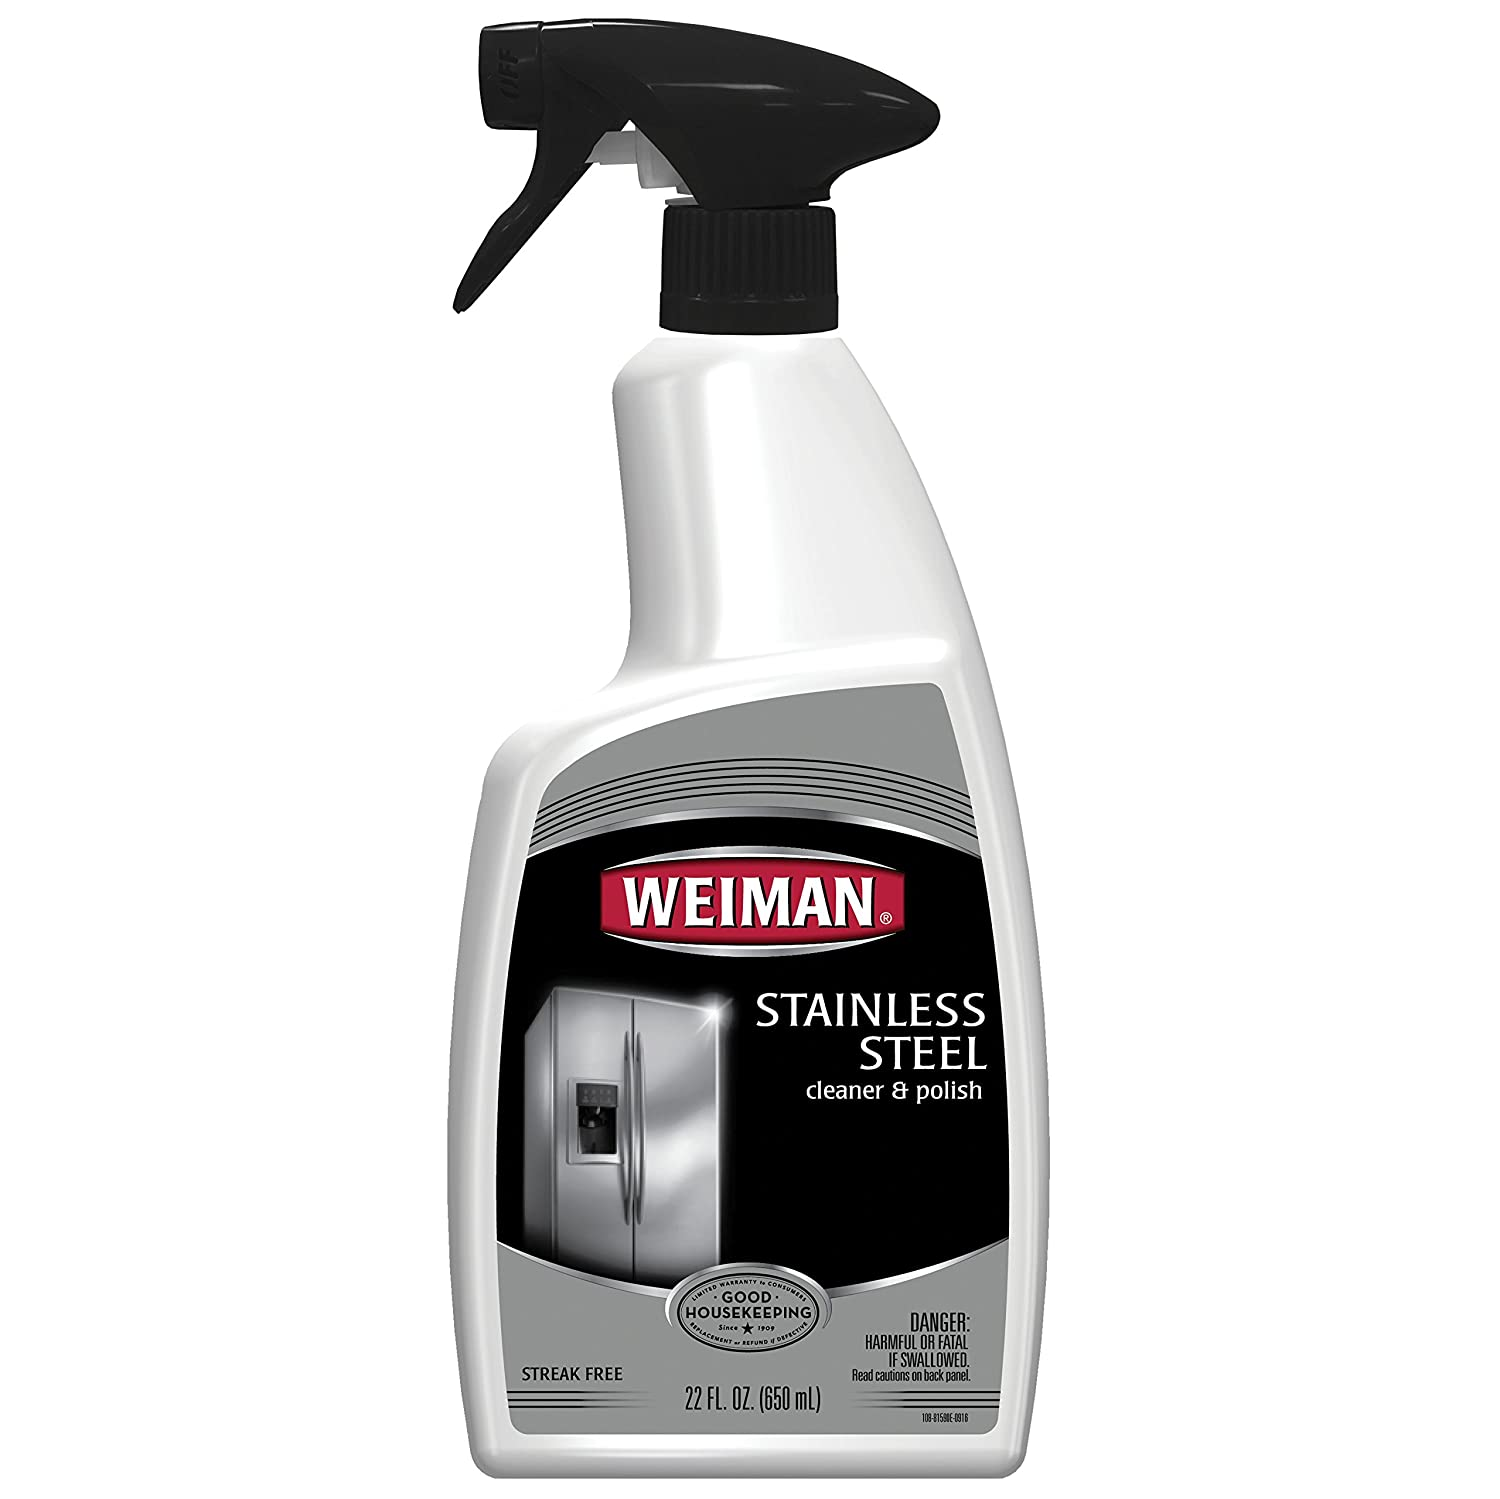 The Best Way To Clean Stainless Steel Appliances Amazoncom Weiman Stainless Steel Cleaner Polish Streak Free